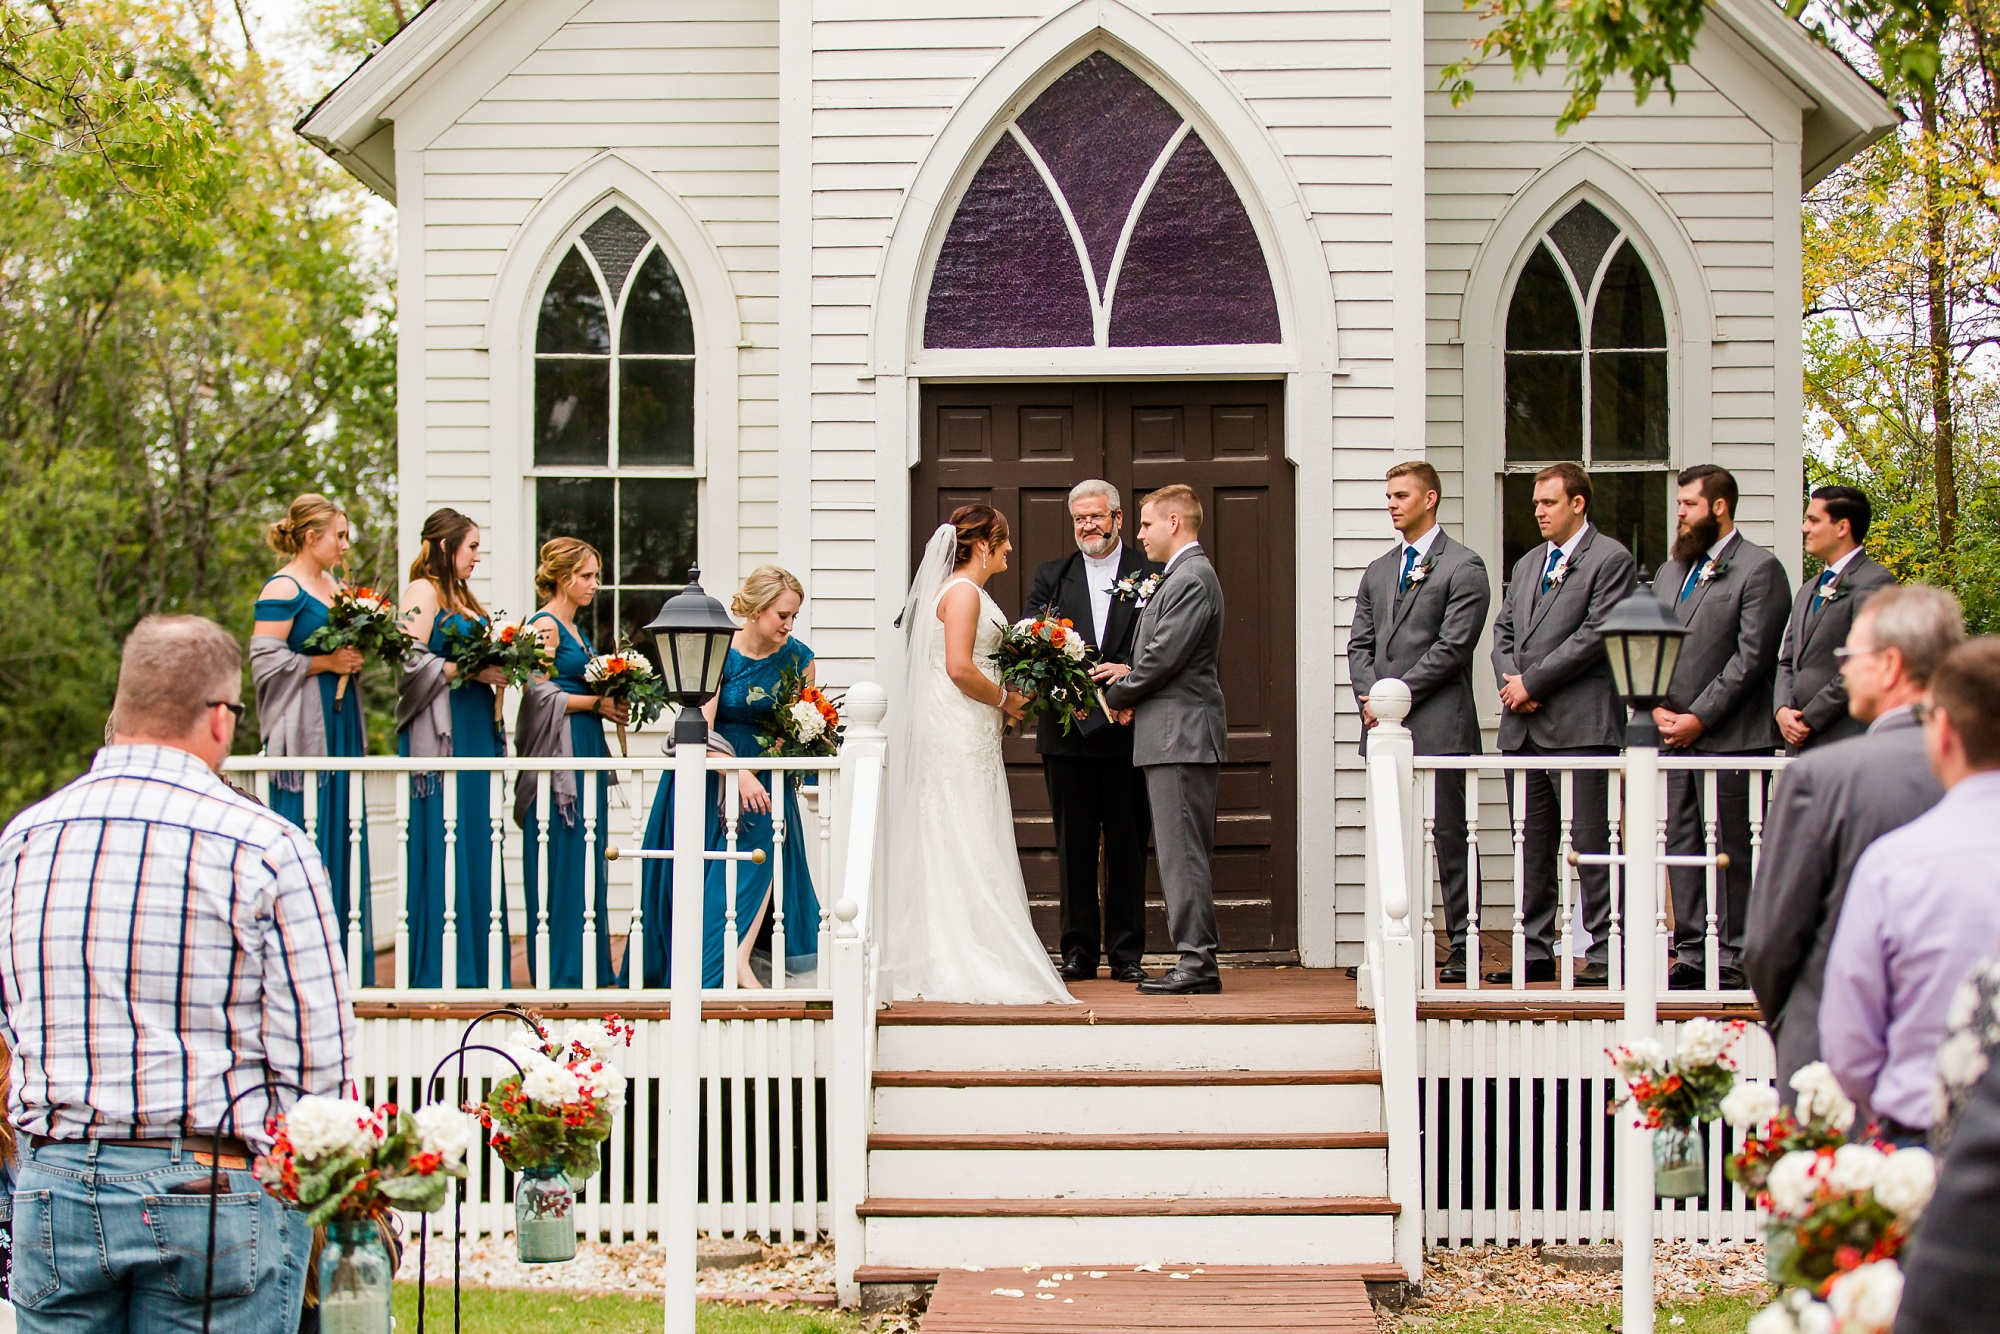 Amber Langerud Photography_Moohread, Outdoor, Barn Wedding at A Friends House_7101.jpg